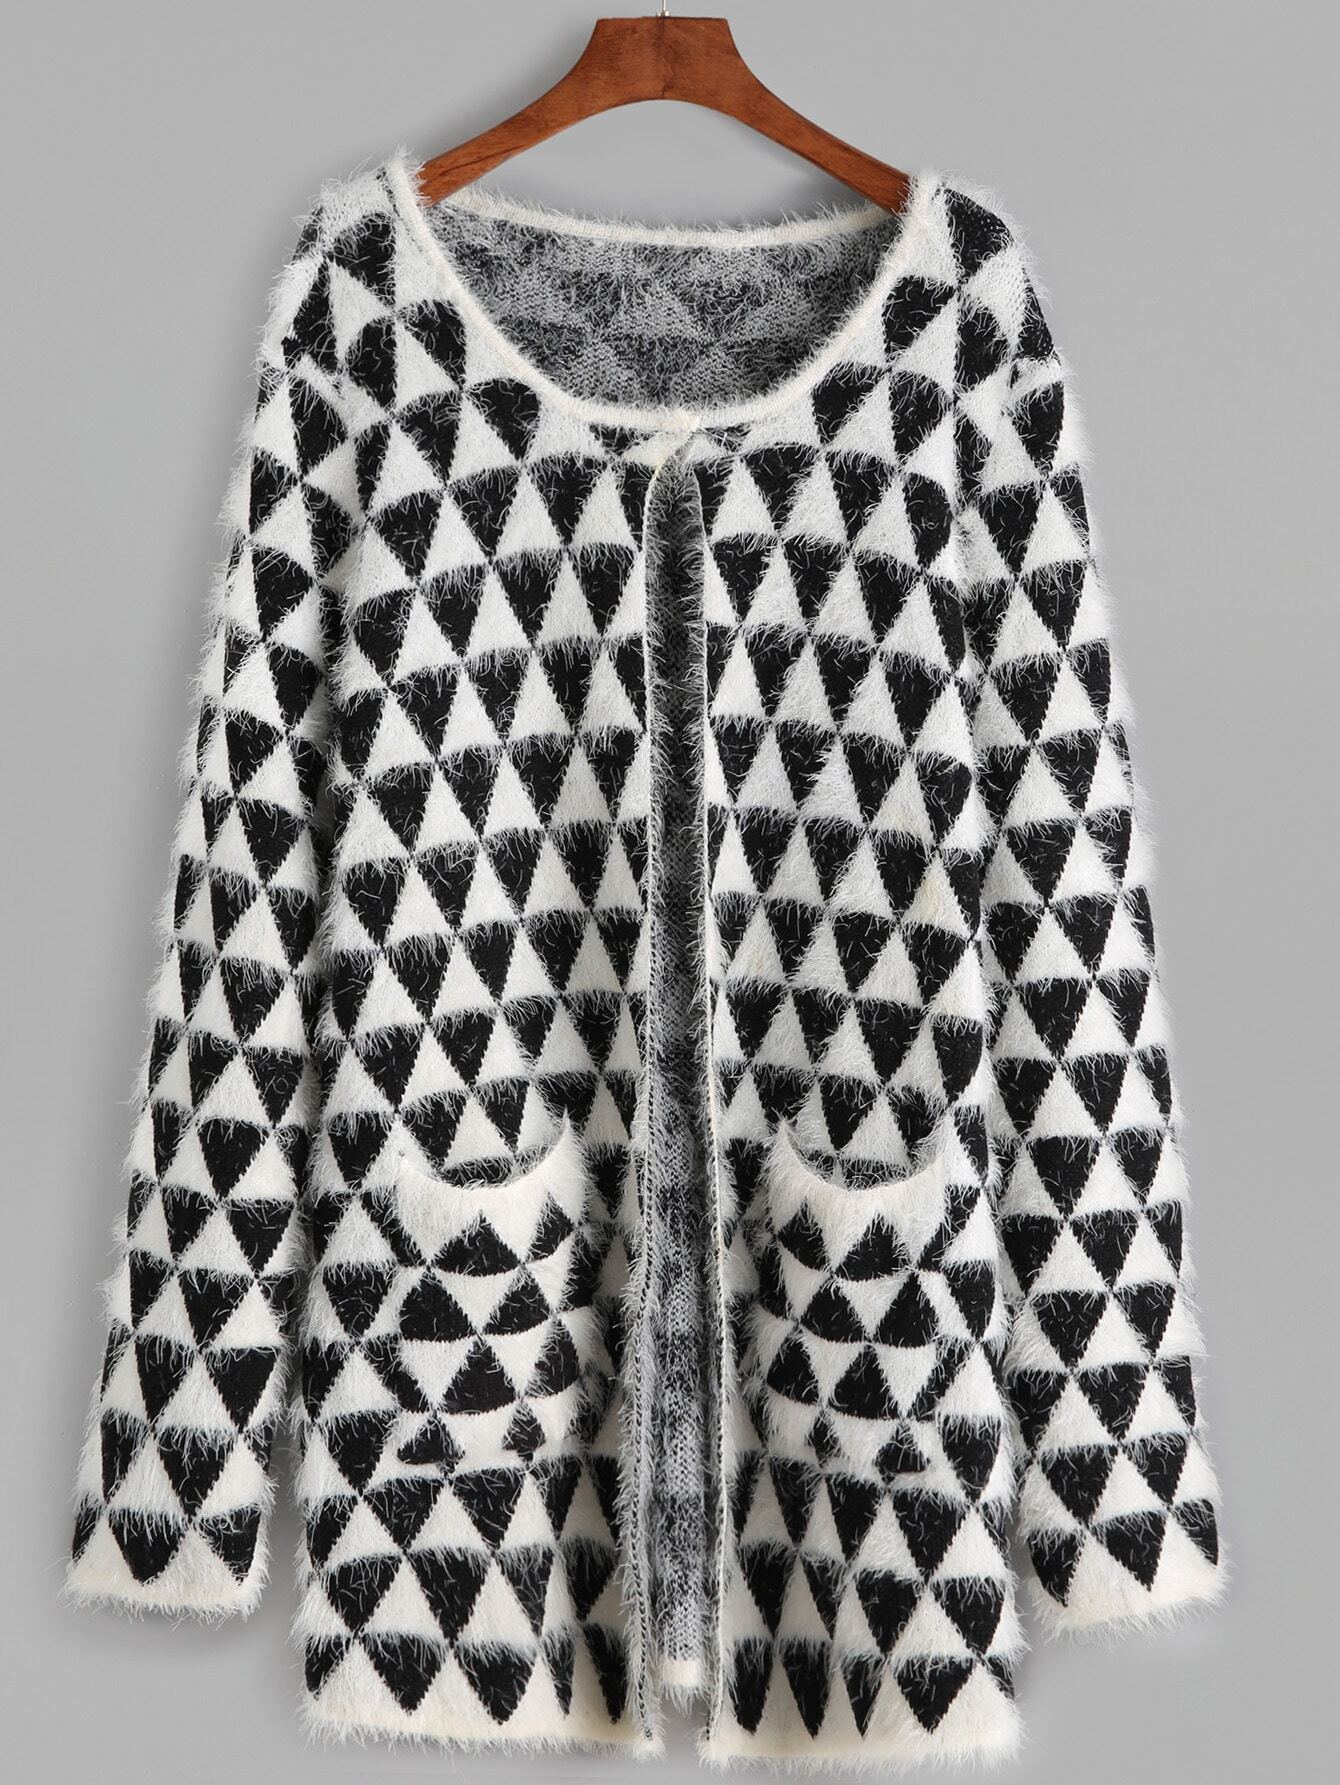 Black And White Geo Pattern Fluffy Sweater CoatBlack And White Geo Pattern Fluffy Sweater Coat<br><br>color: Black and White<br>size: one-size